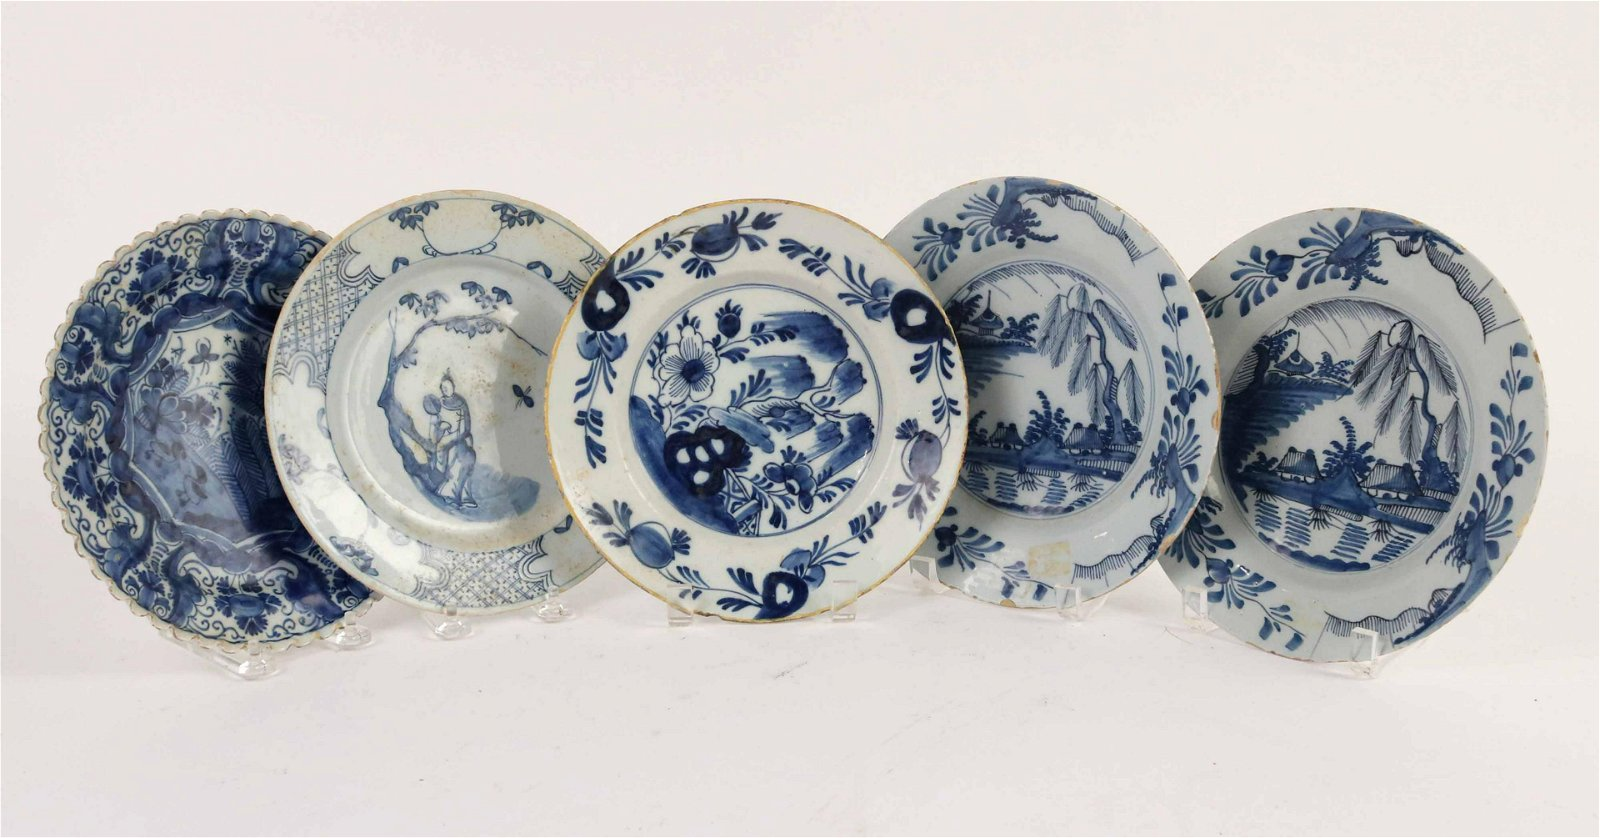 Five Blue and White Tin Glazed Earthenware Plates